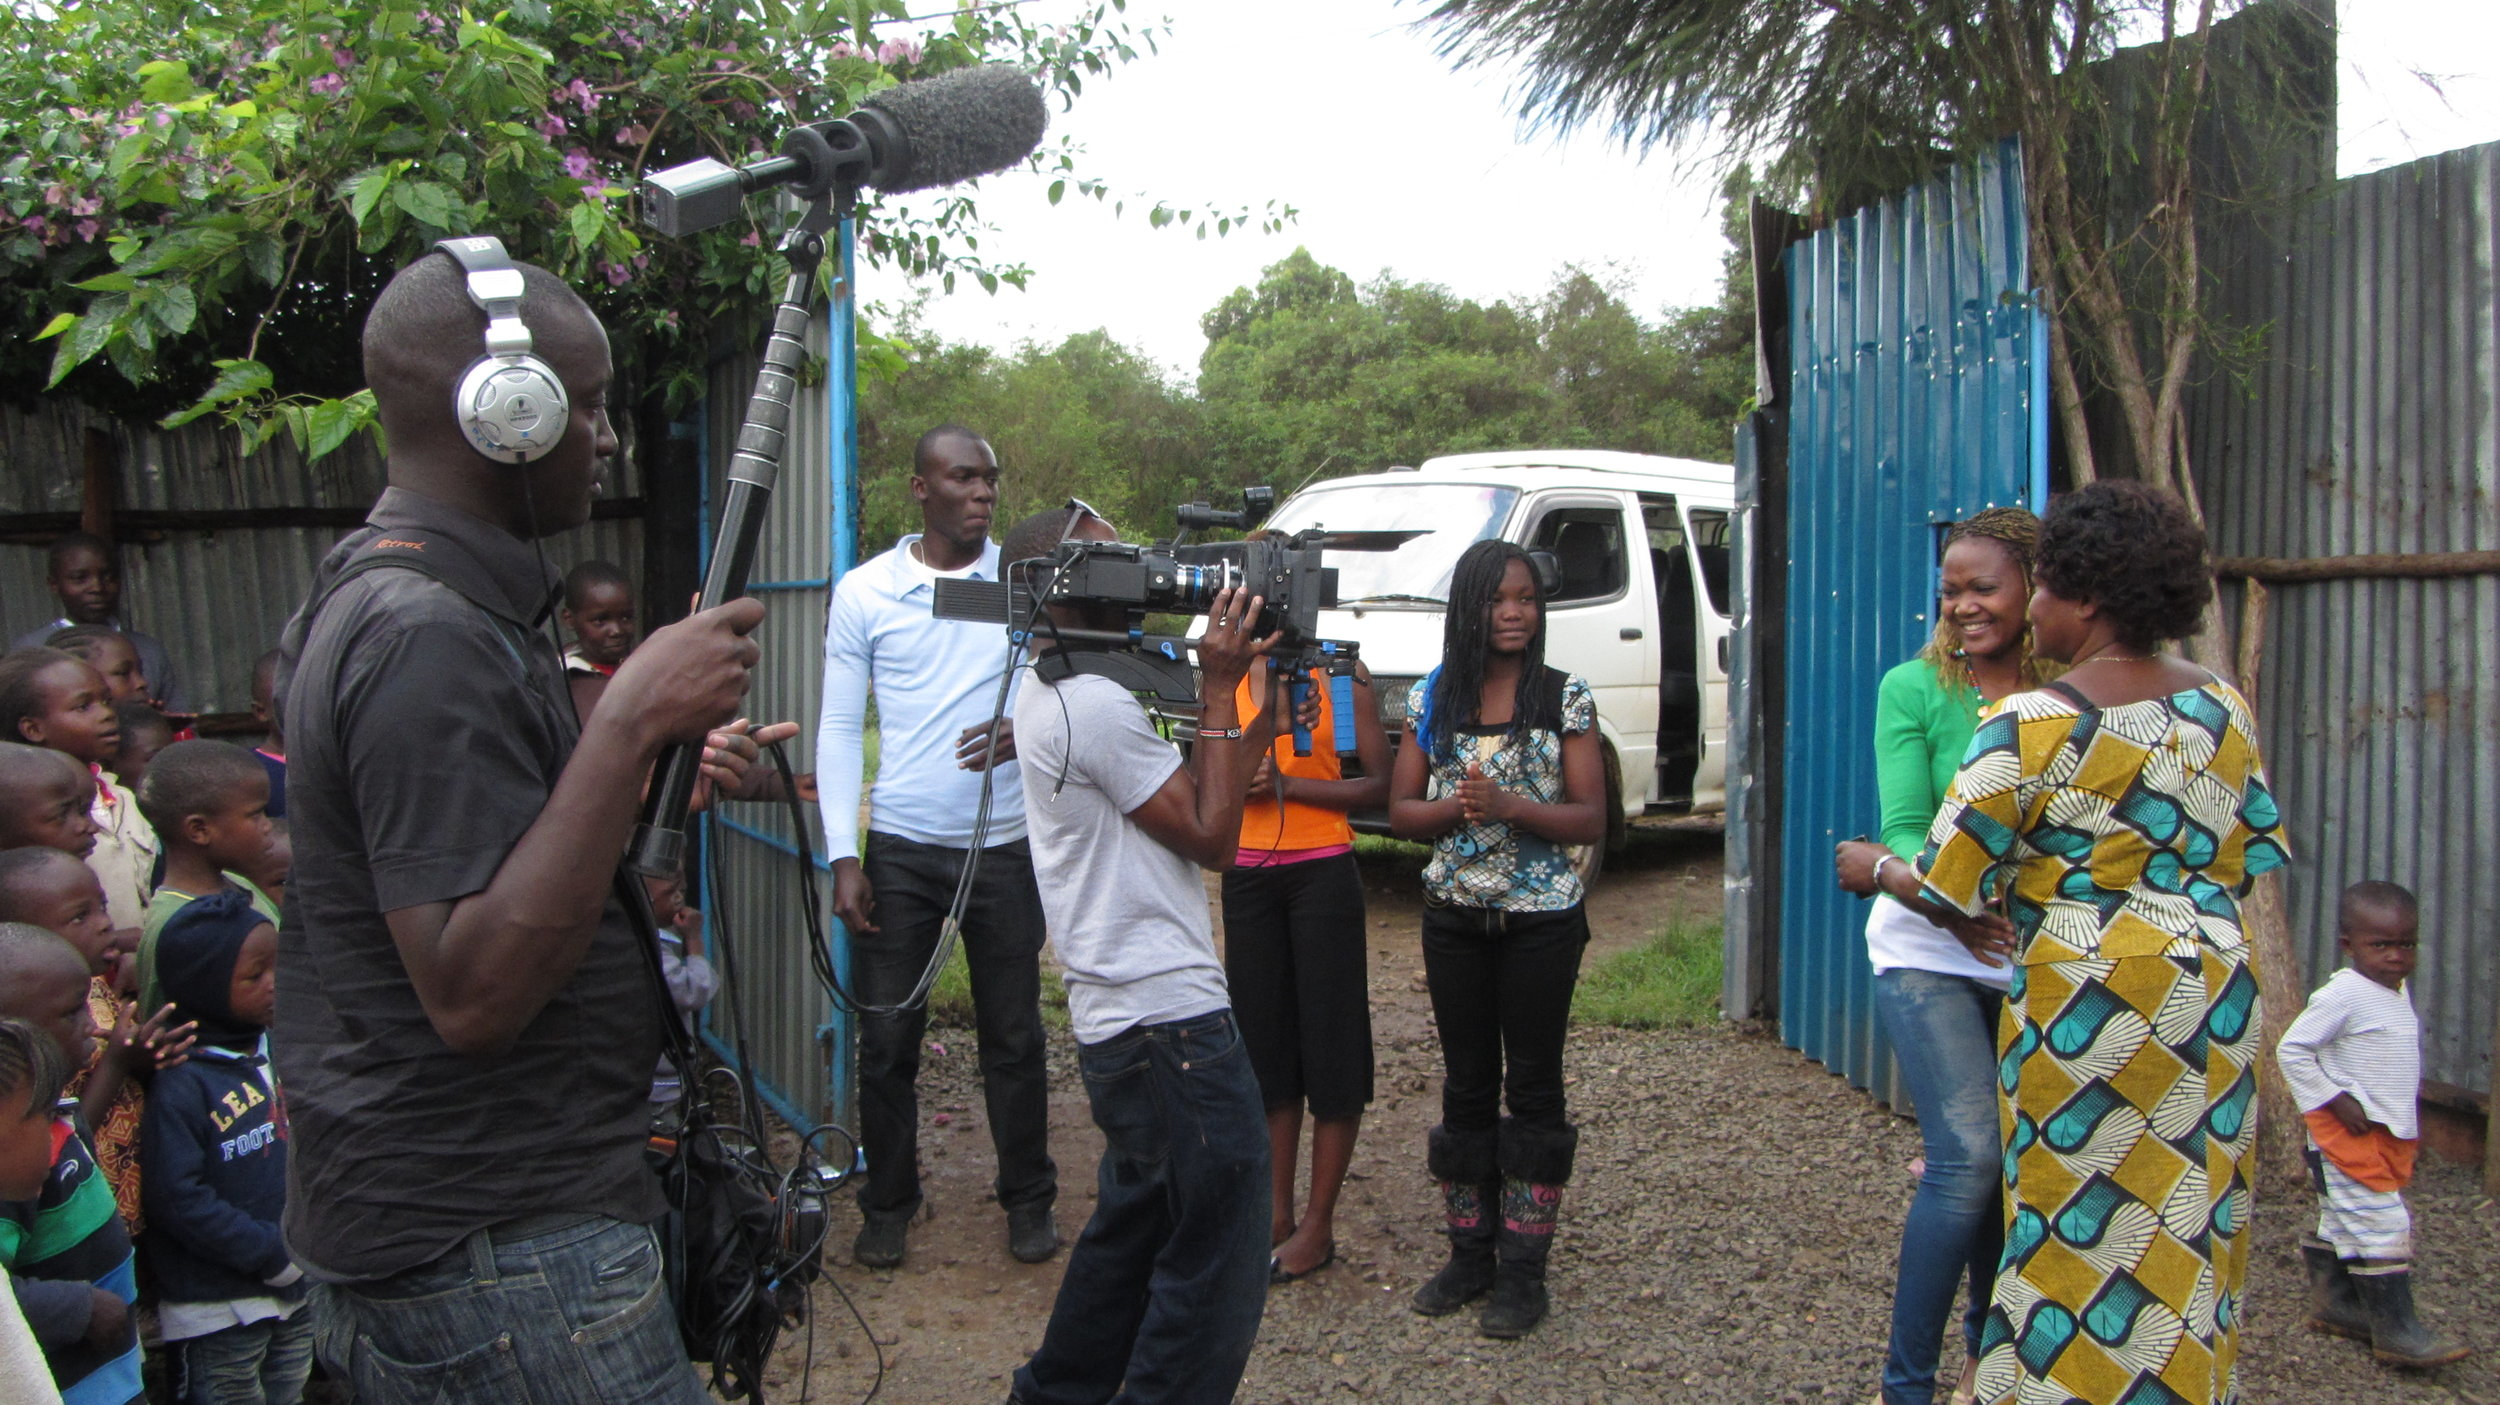 Filming in Nairobi with CouchSurfing